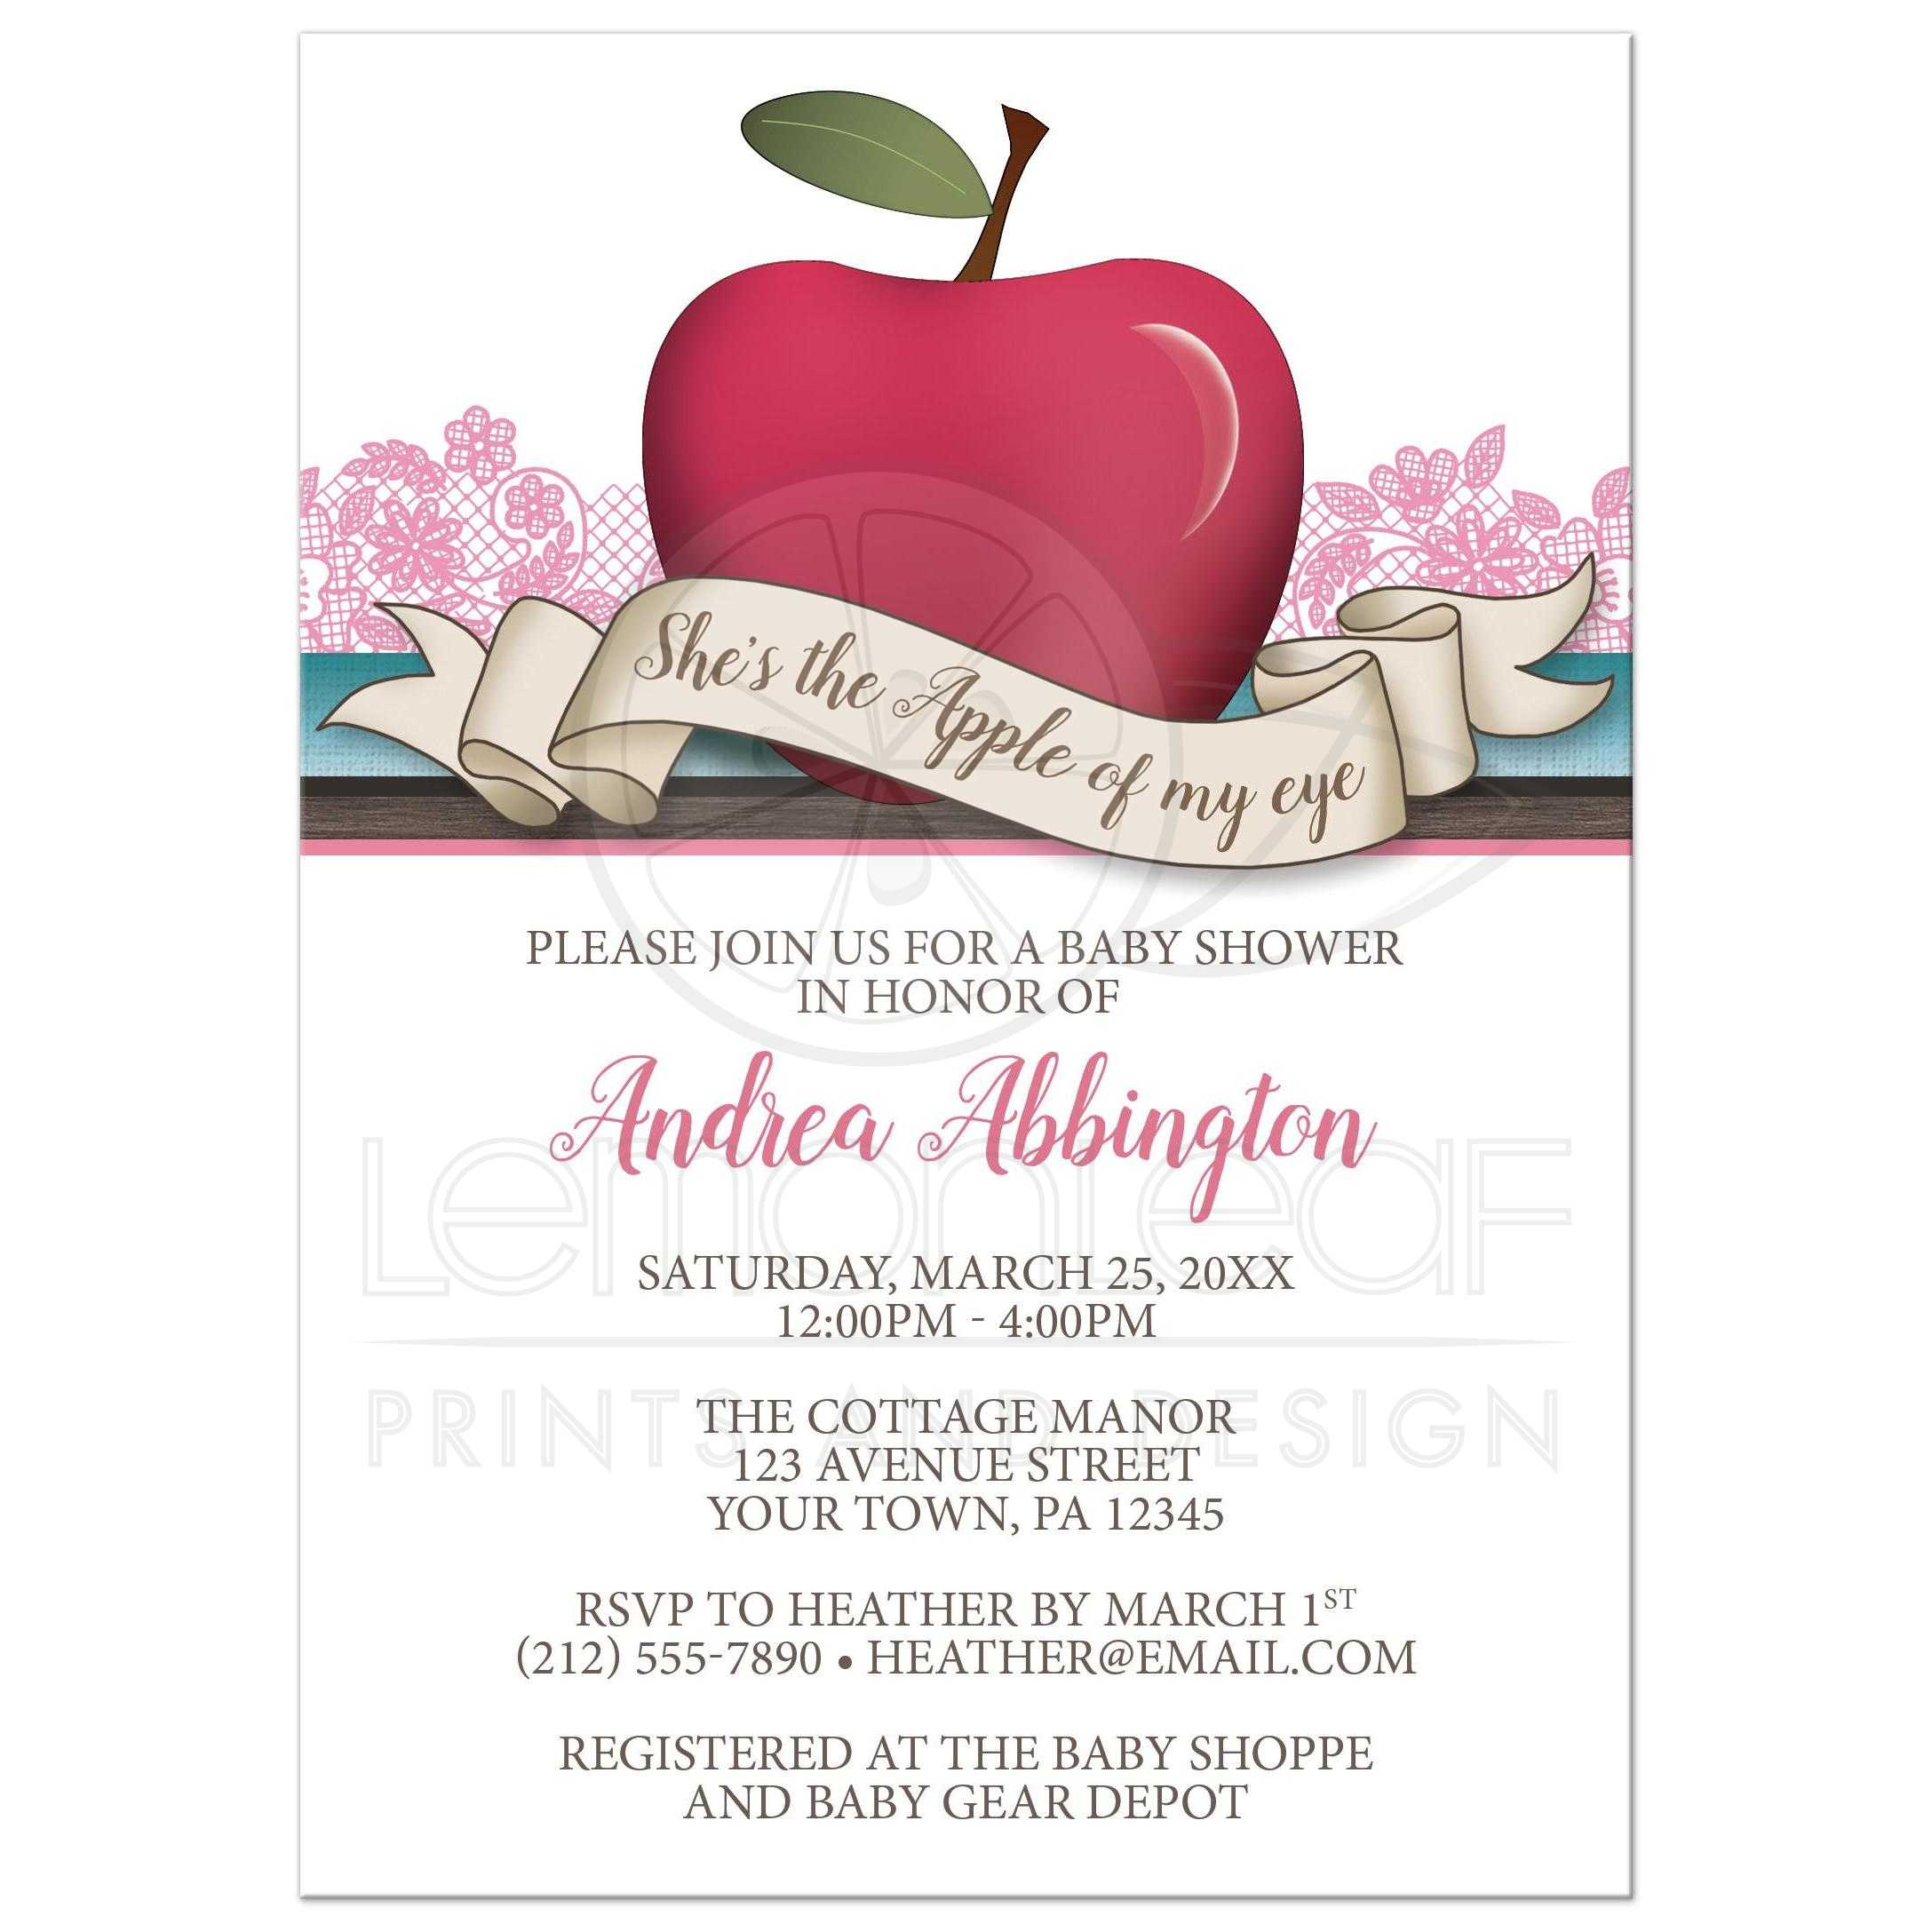 Baby Shower Invitations - Girl Pink \'Apple of My Eye\'